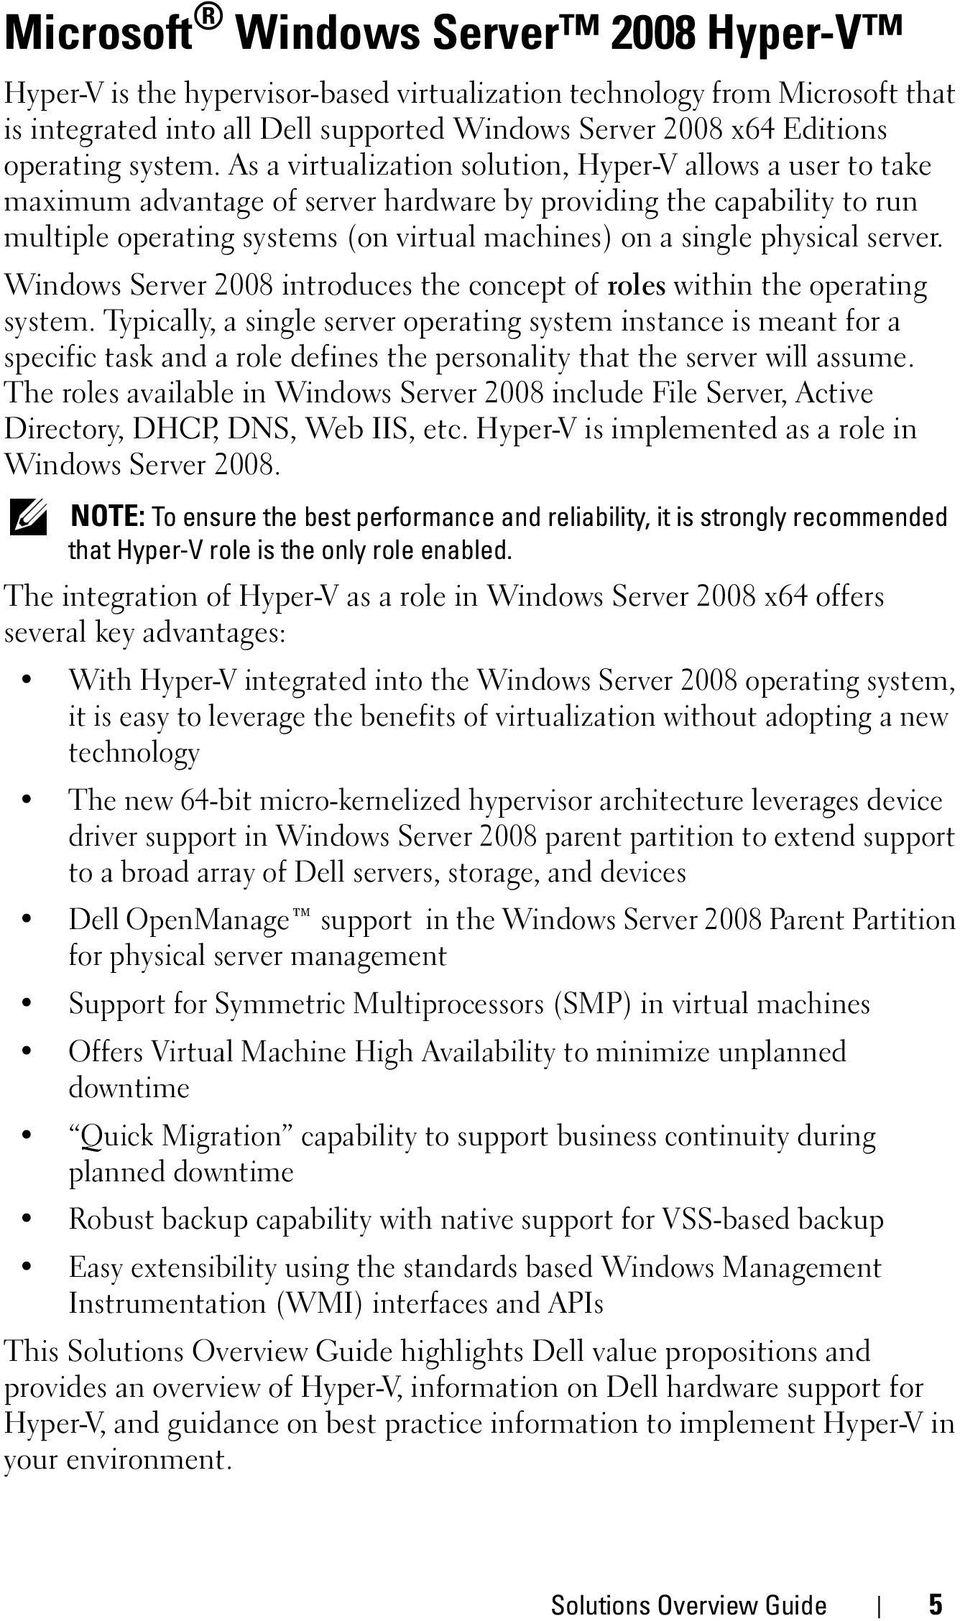 As a virtualization solution, Hyper-V allows a user to take maximum advantage of server hardware by providing the capability to run multiple operating systems (on virtual machines) on a single